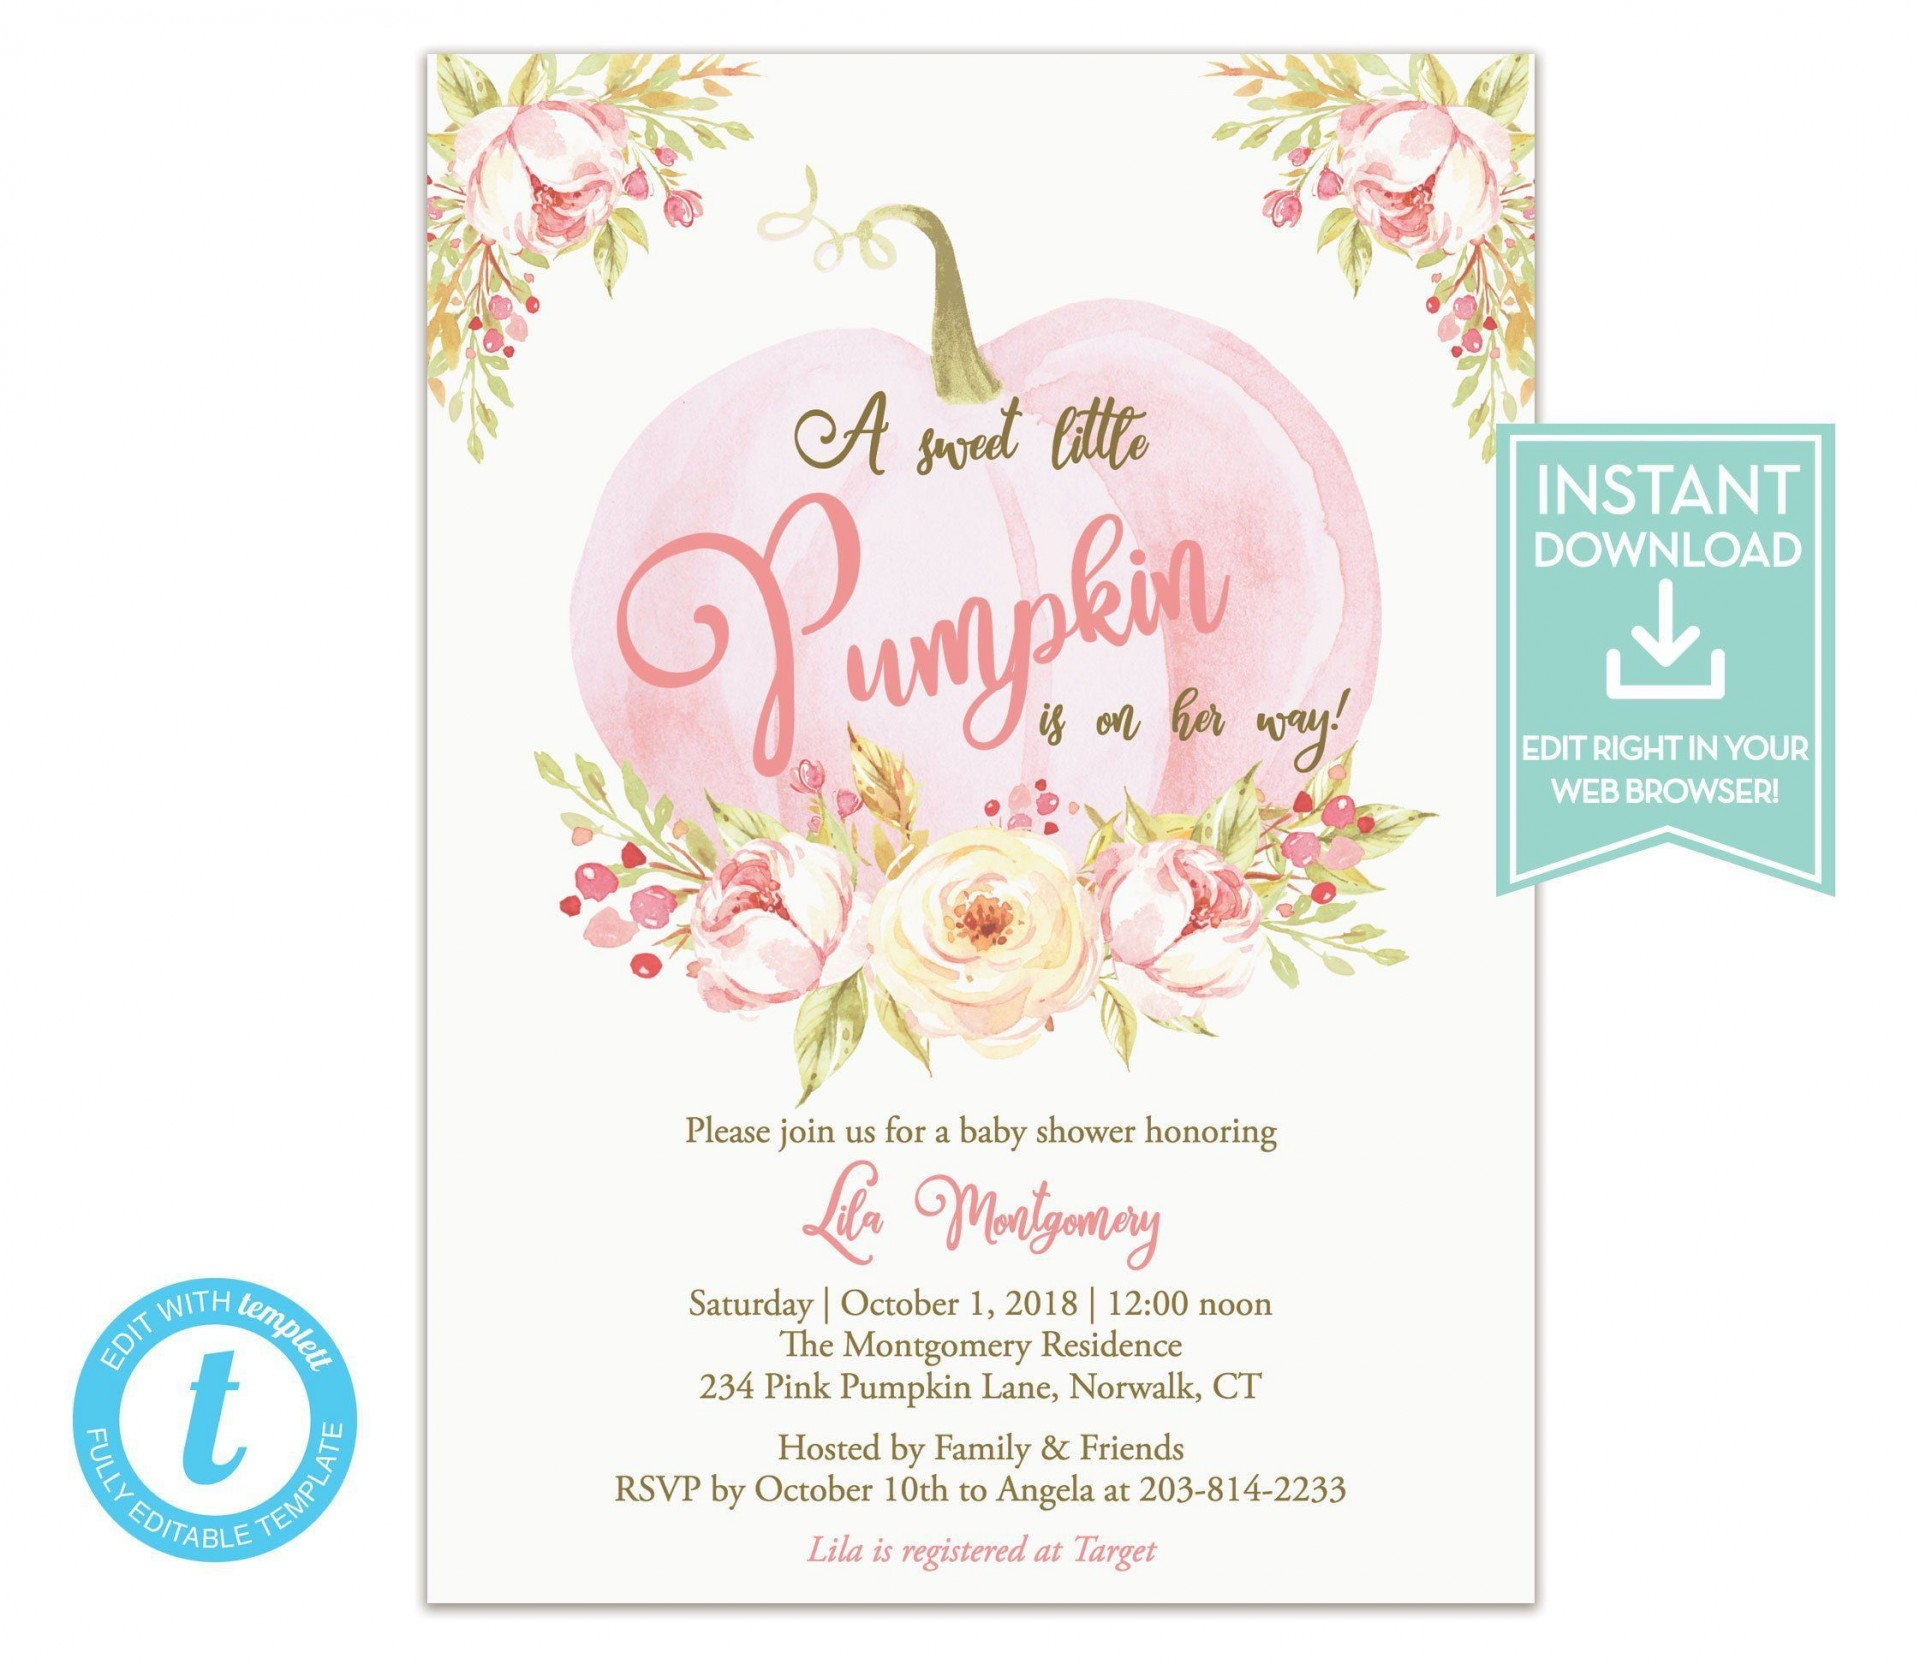 007 Fearsome Baby Shower Invitation Girl Pumpkin High Resolution  Pink Little1920